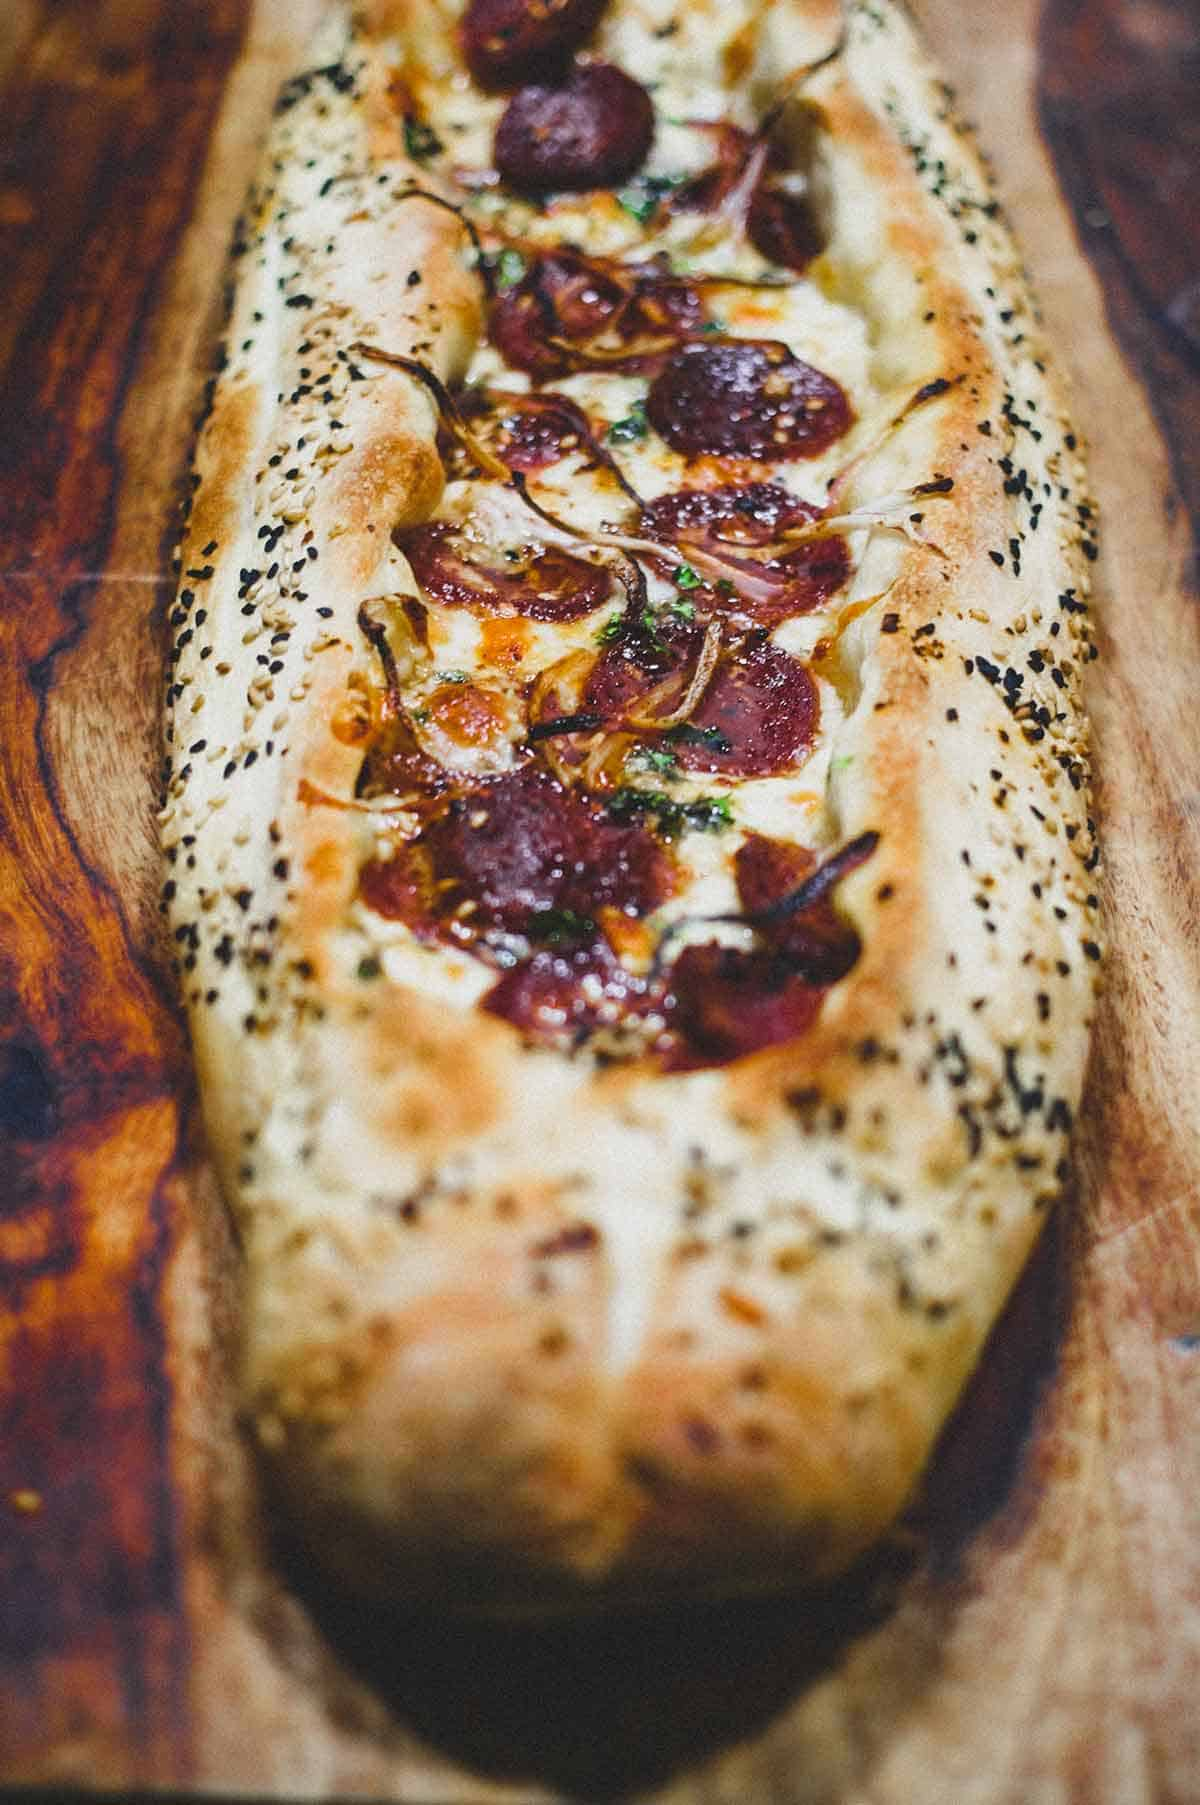 Turkish Pide - It's not pizza, it's pide!